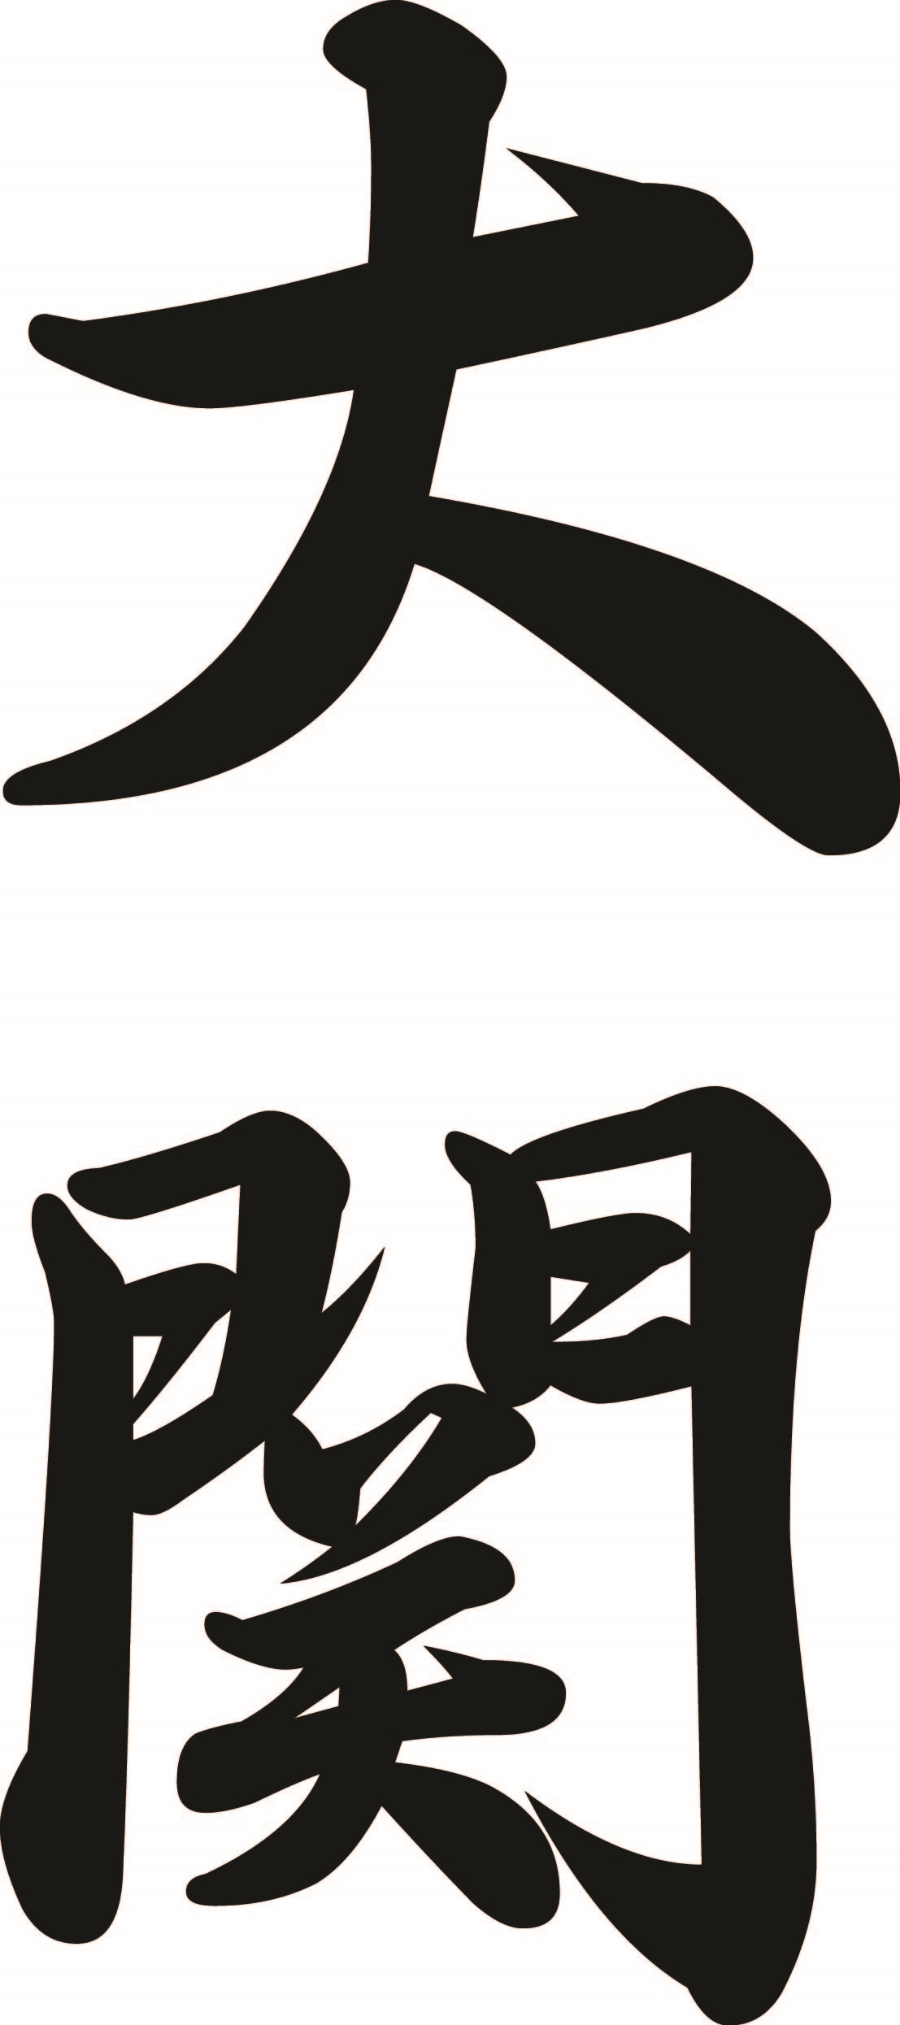 The Ozeki moniker in Kanji. Calligraphy by  Asian Brush Arts & Graphic Design LLC .